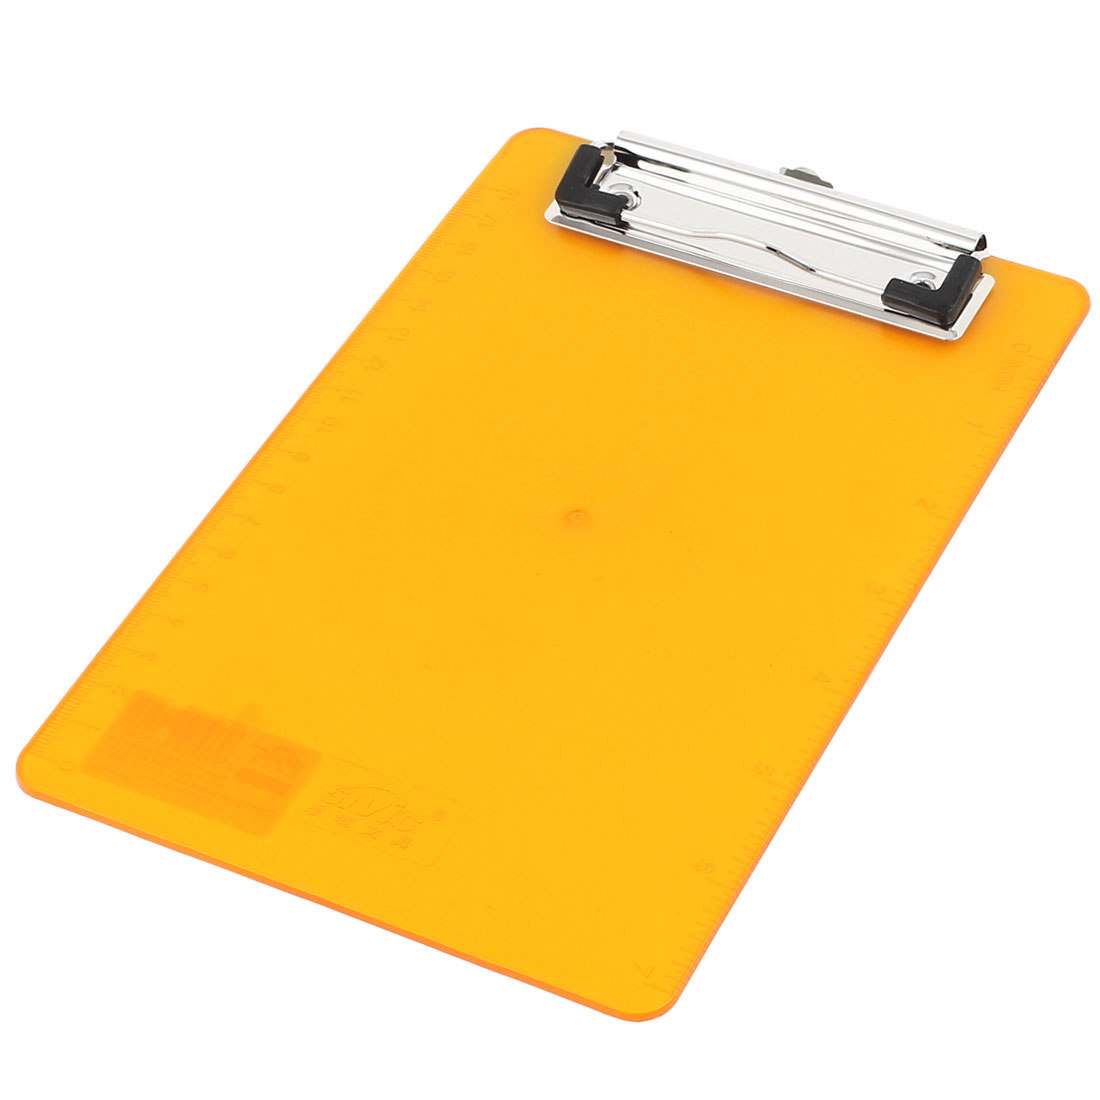 Office File Holding Orange Plastic Clip Board 240 x 140mm for A6 Paper